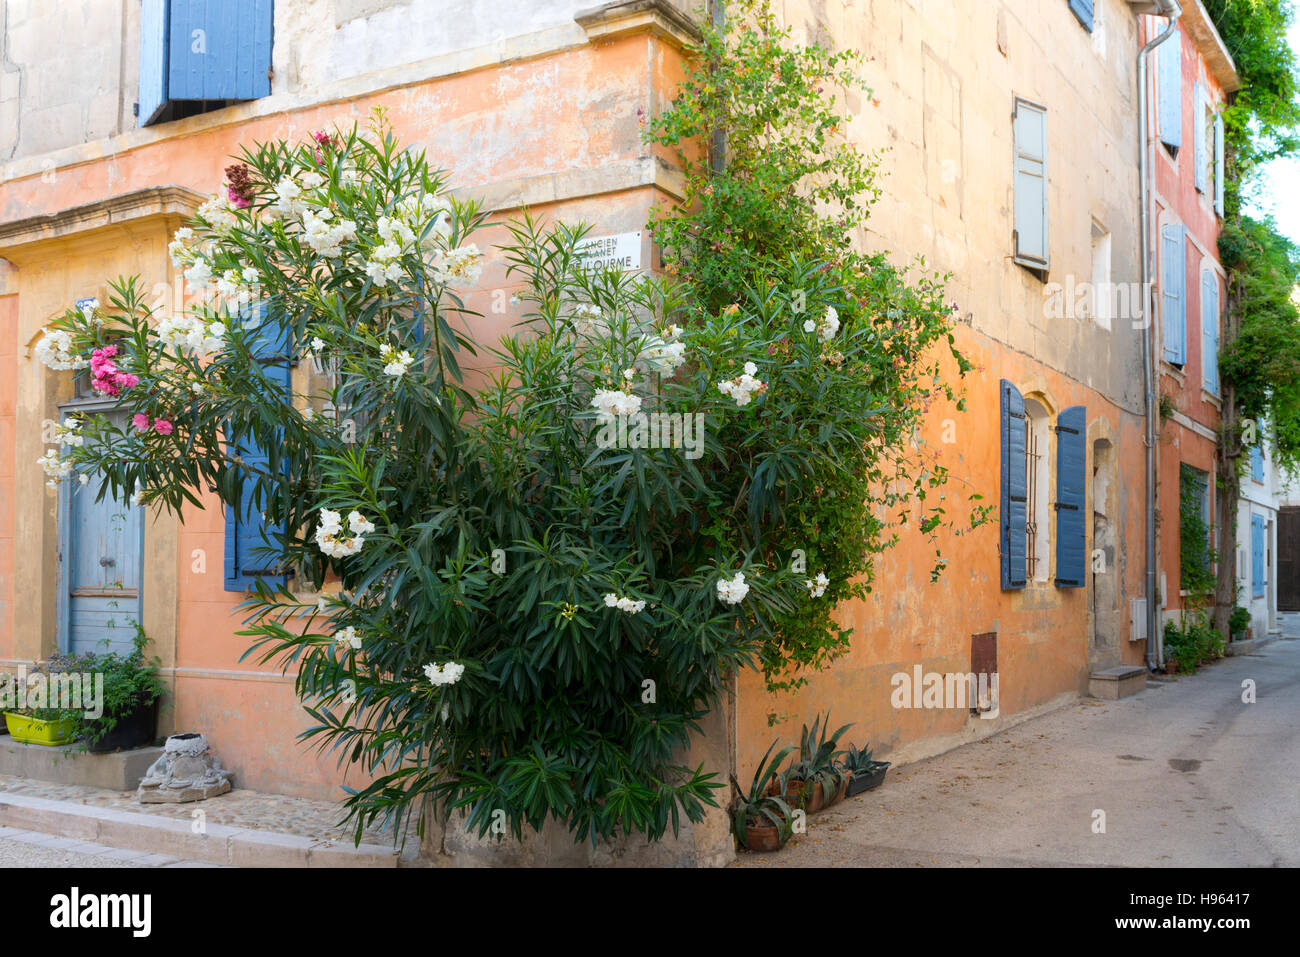 Typical residential streets, Arles France - Stock Image